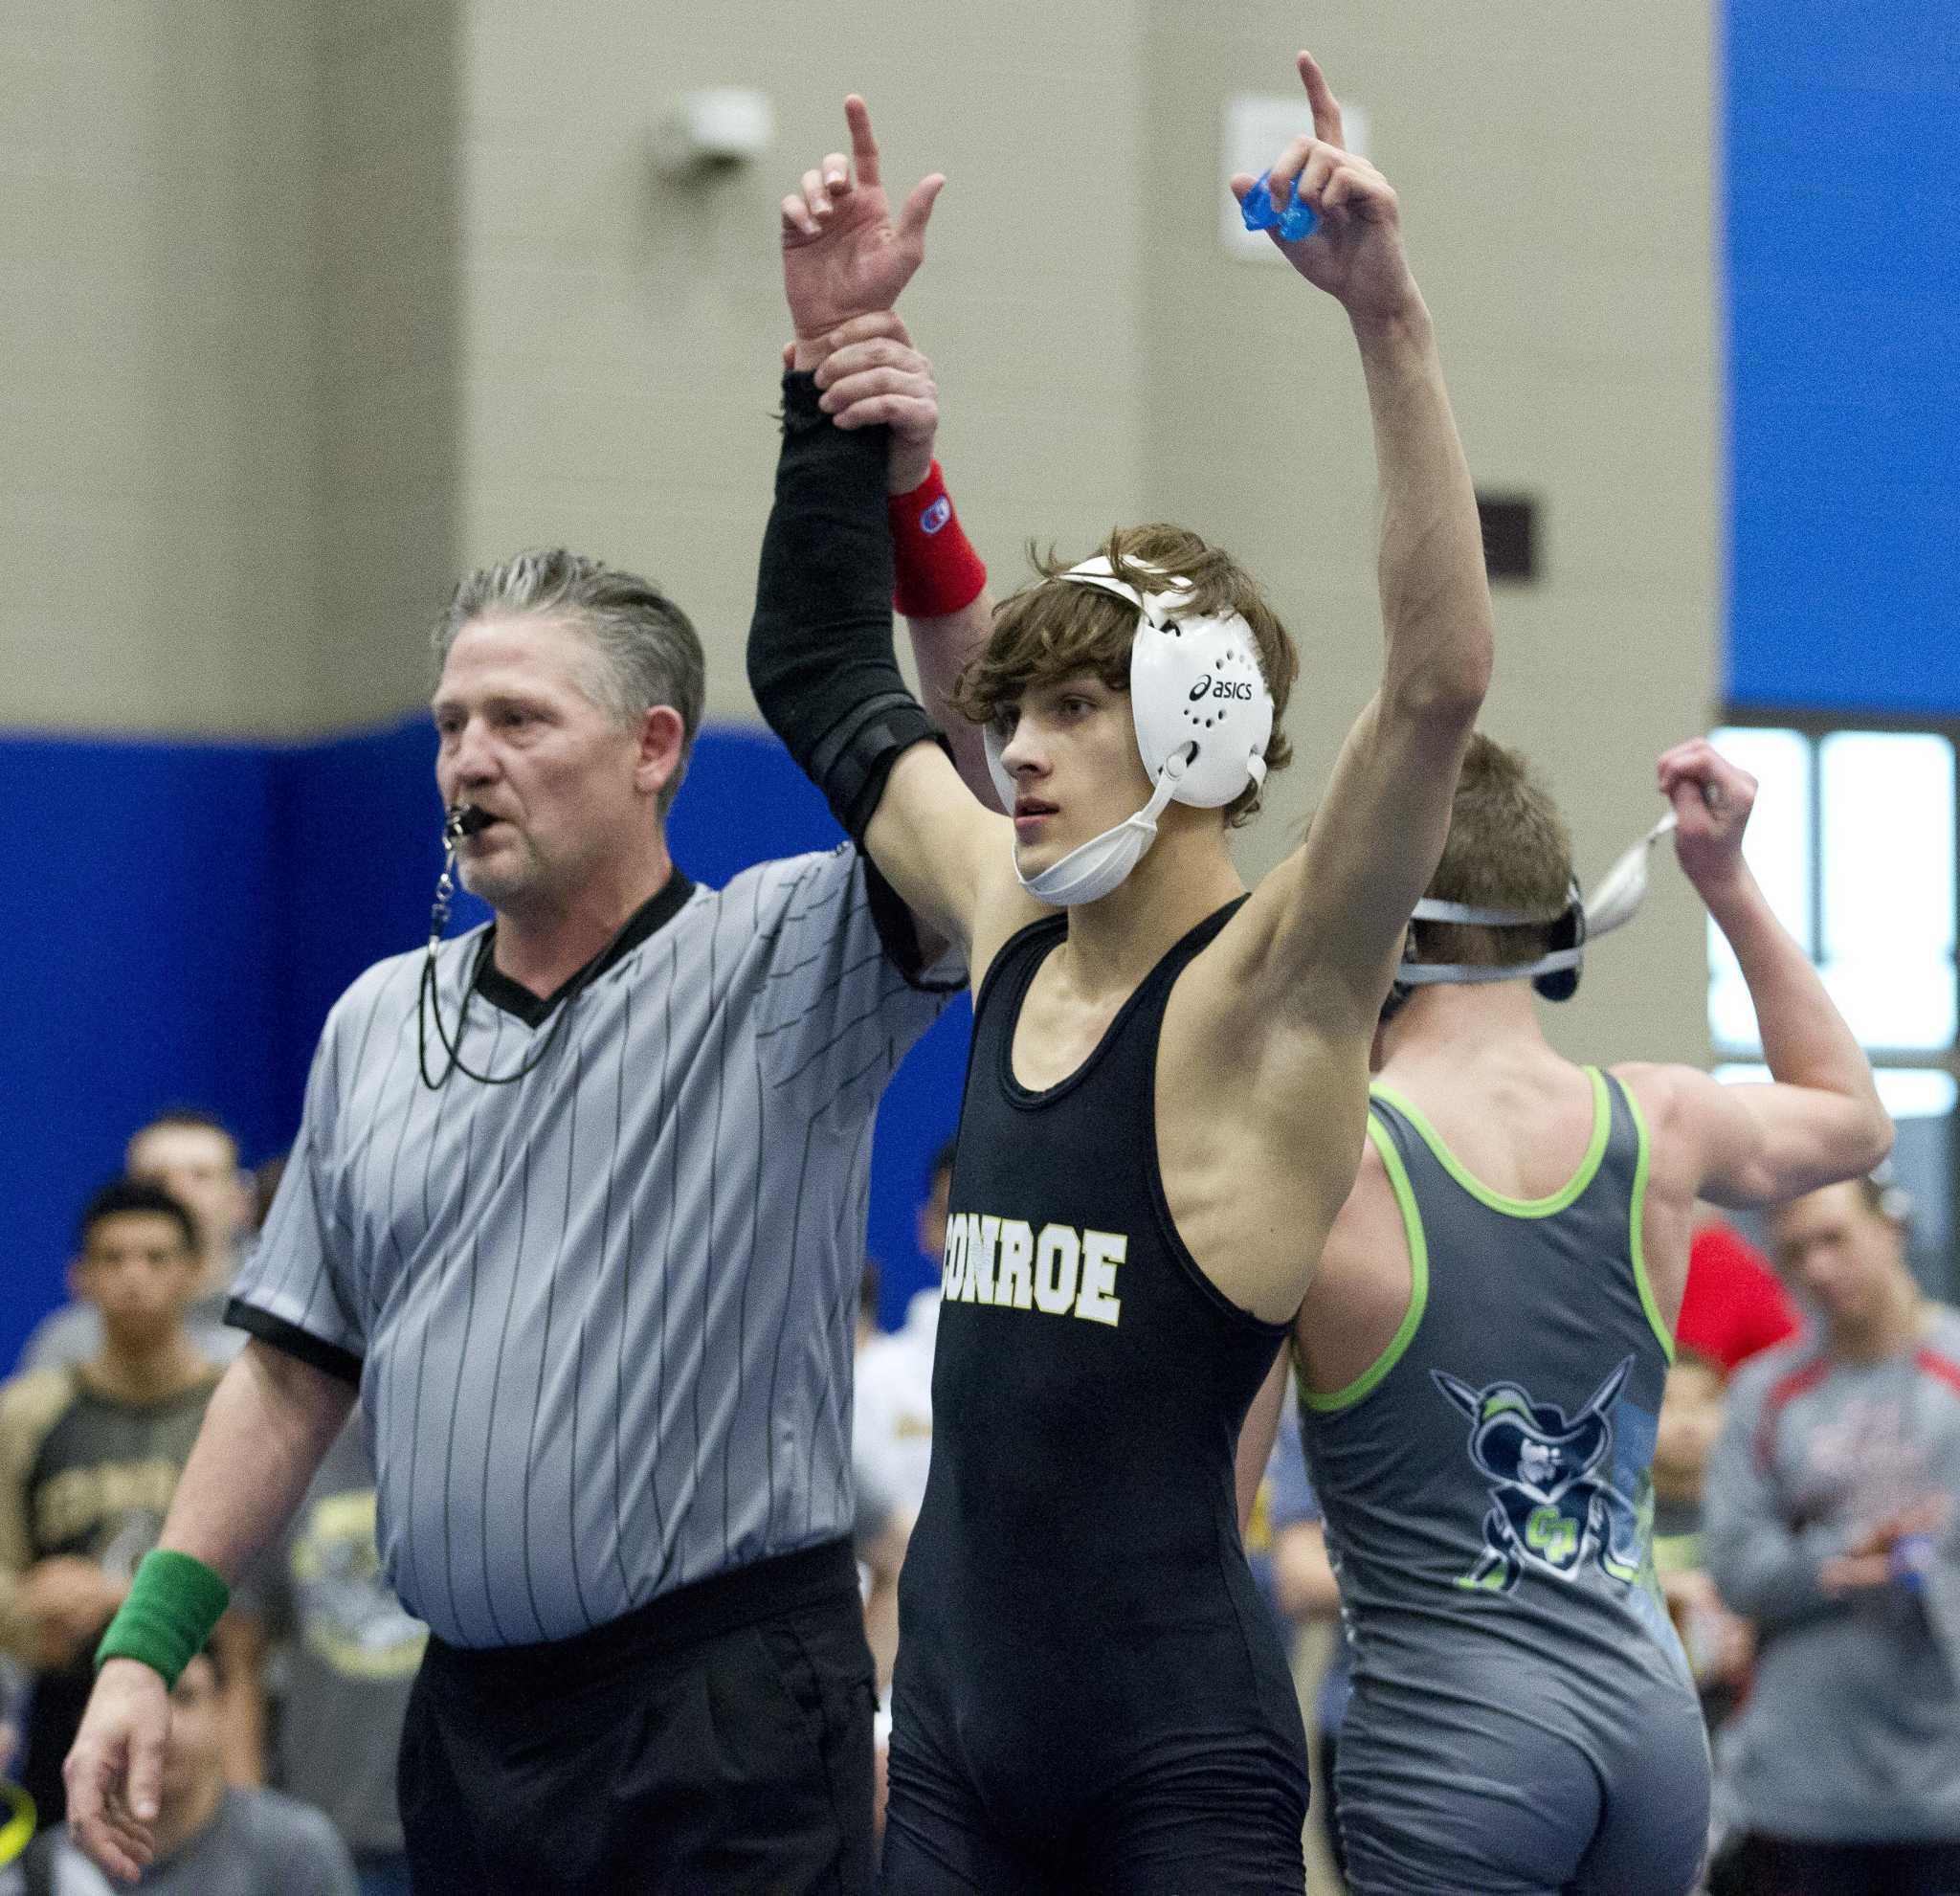 Conroe's Wyatt Maturin rallies to qualify for state wrestling following injury